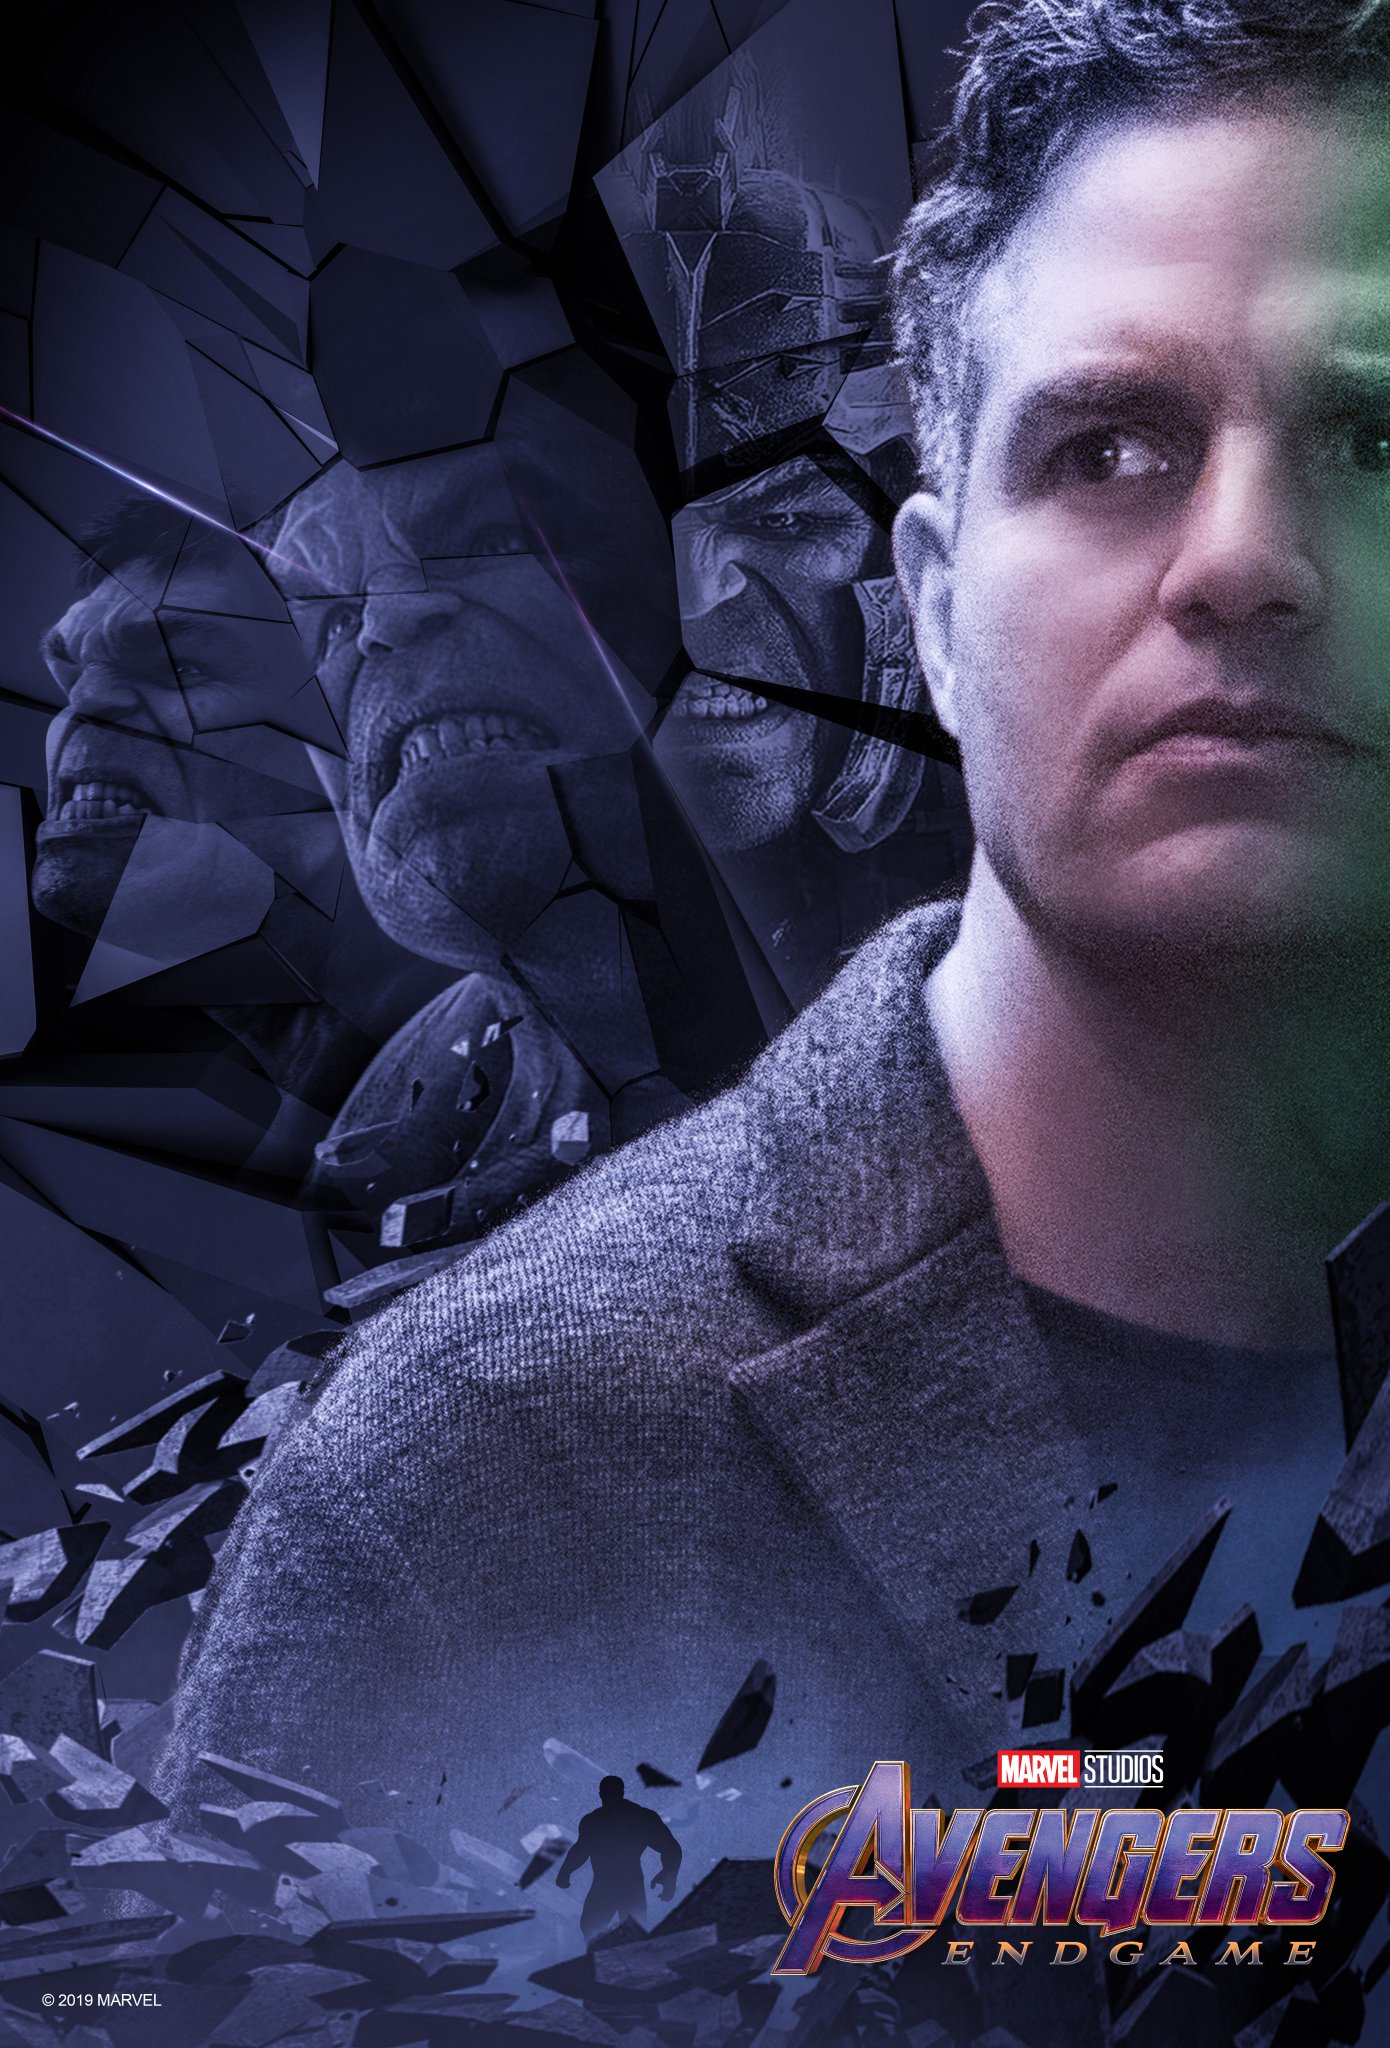 Avengers Endgame Character Posters Reflect On The Legacy Of